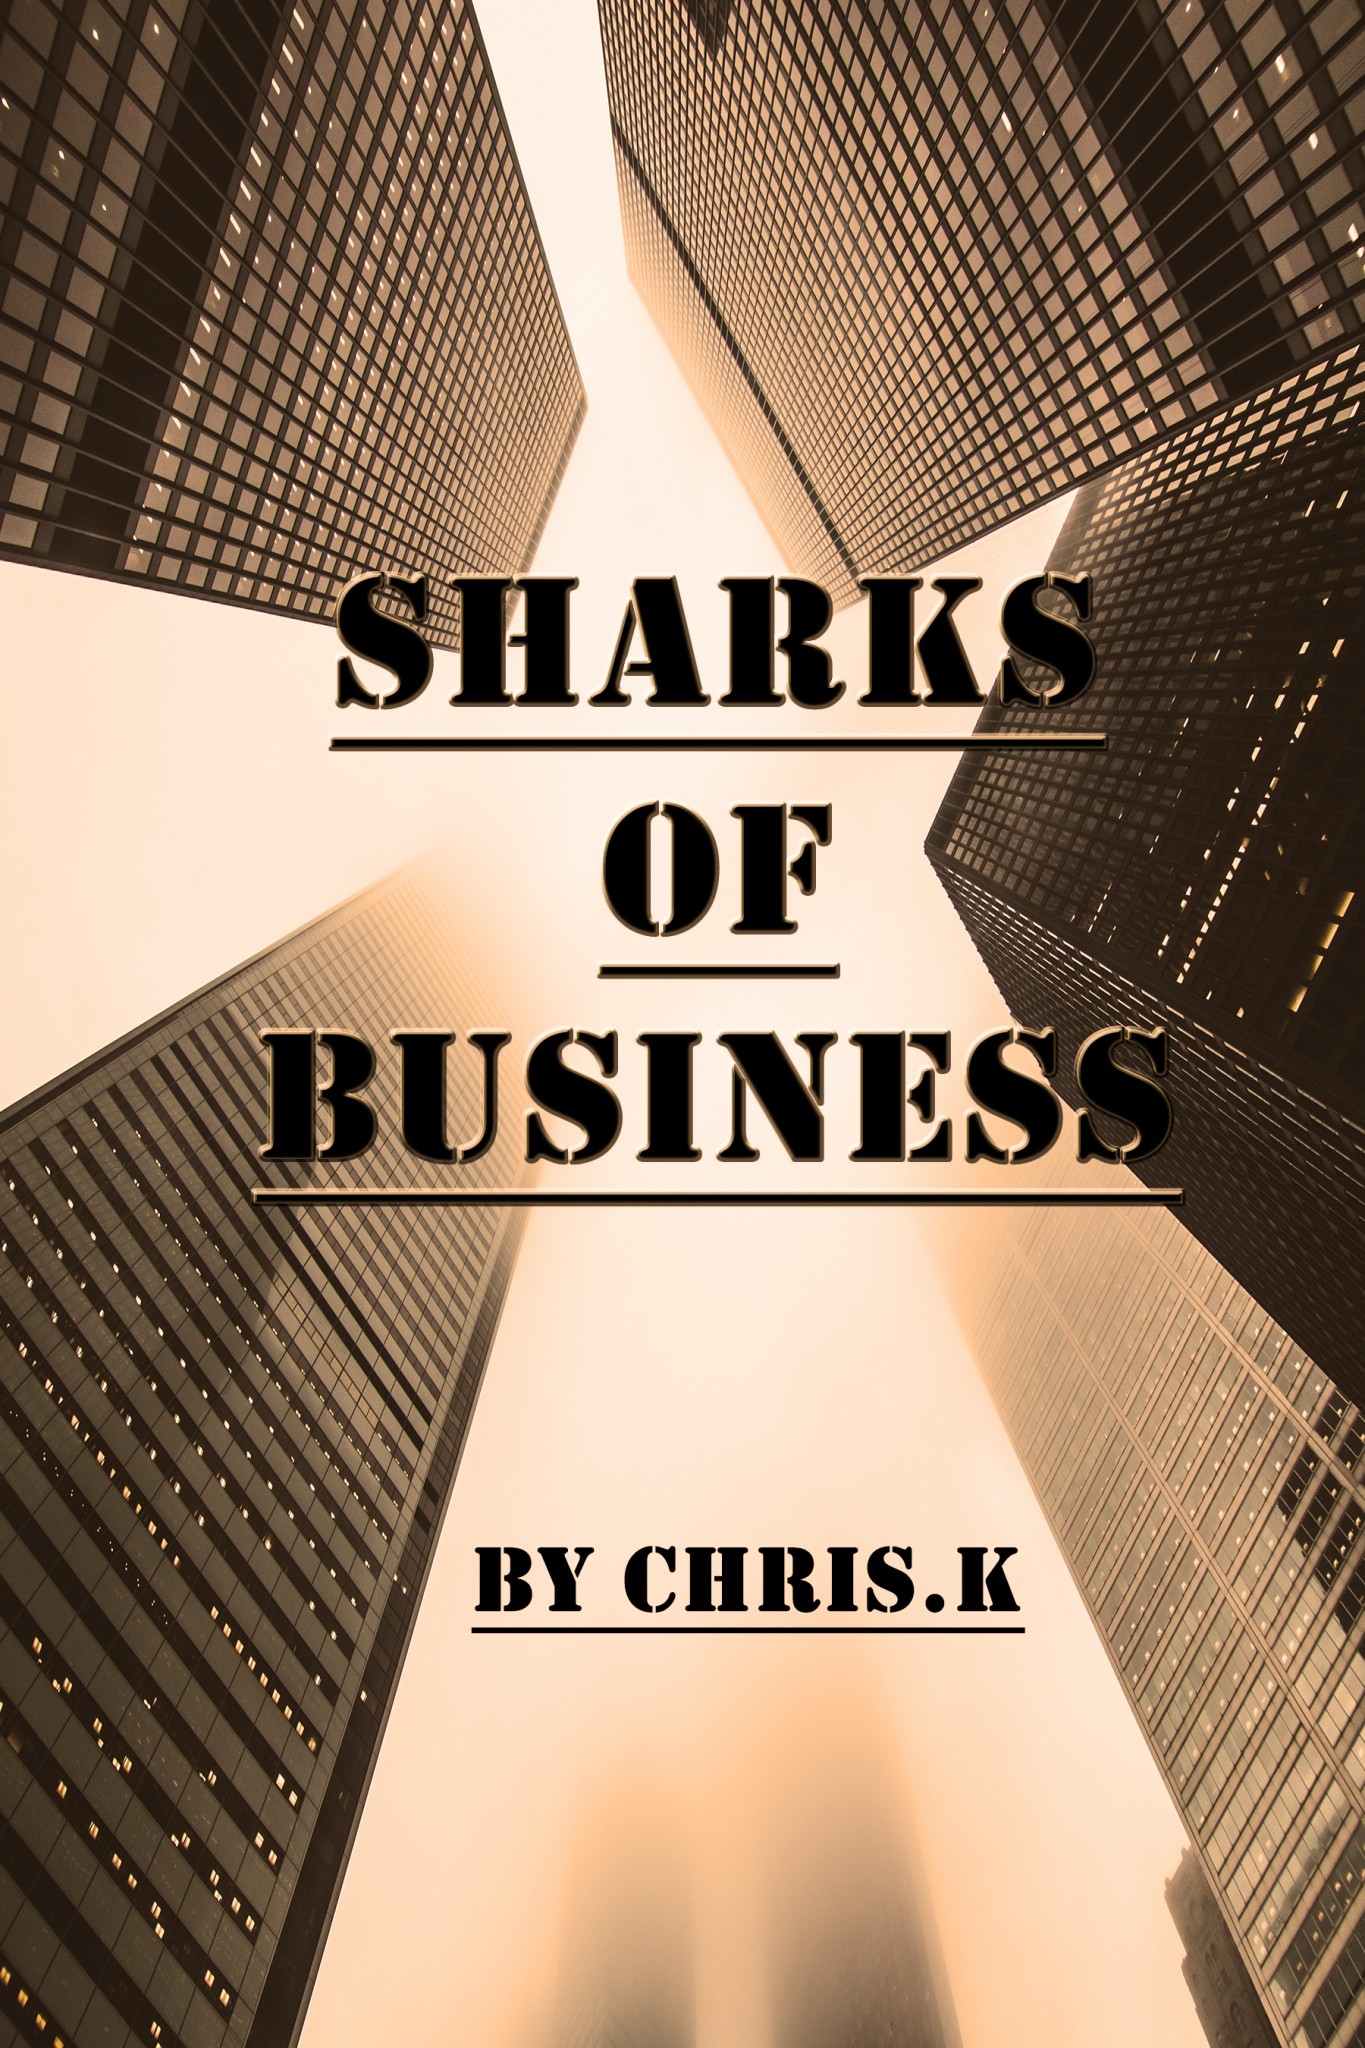 Business Book Cover : Sharks of business the book cover designer